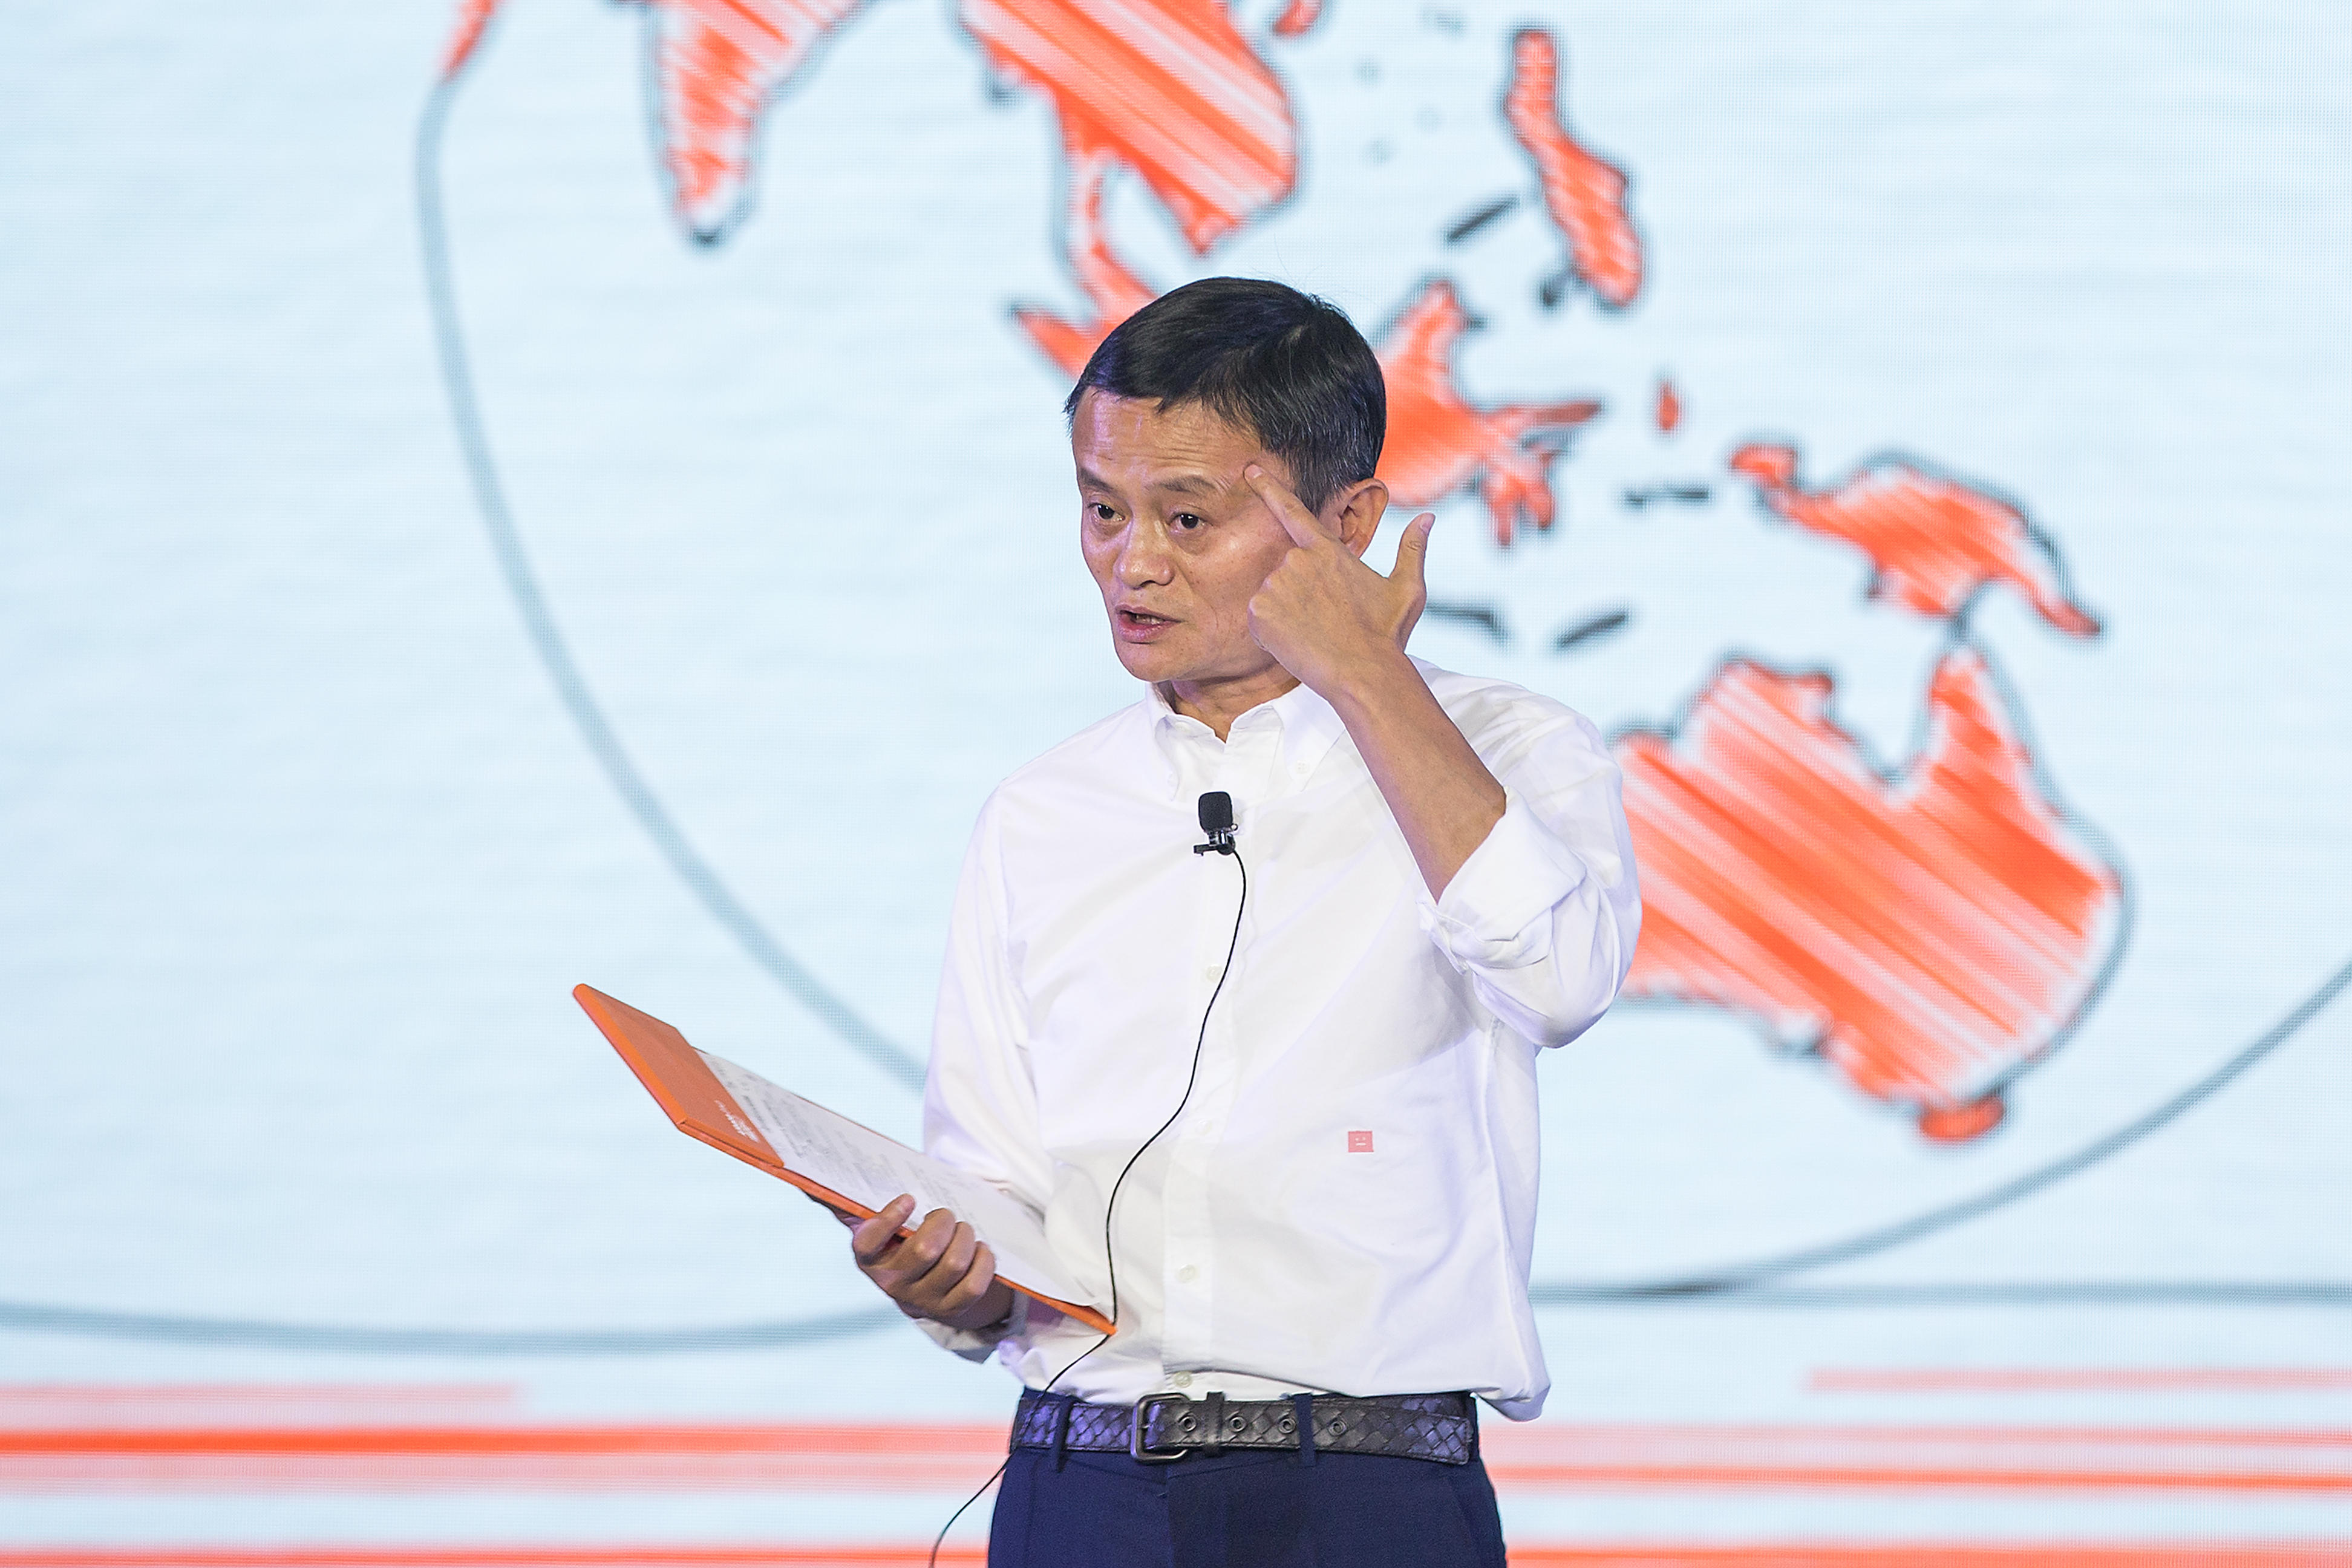 Alibaba Group Chairman Jack Ma makes a speech at the Alibaba Xin Philanthropy Conference on Sept. 5, 2018.